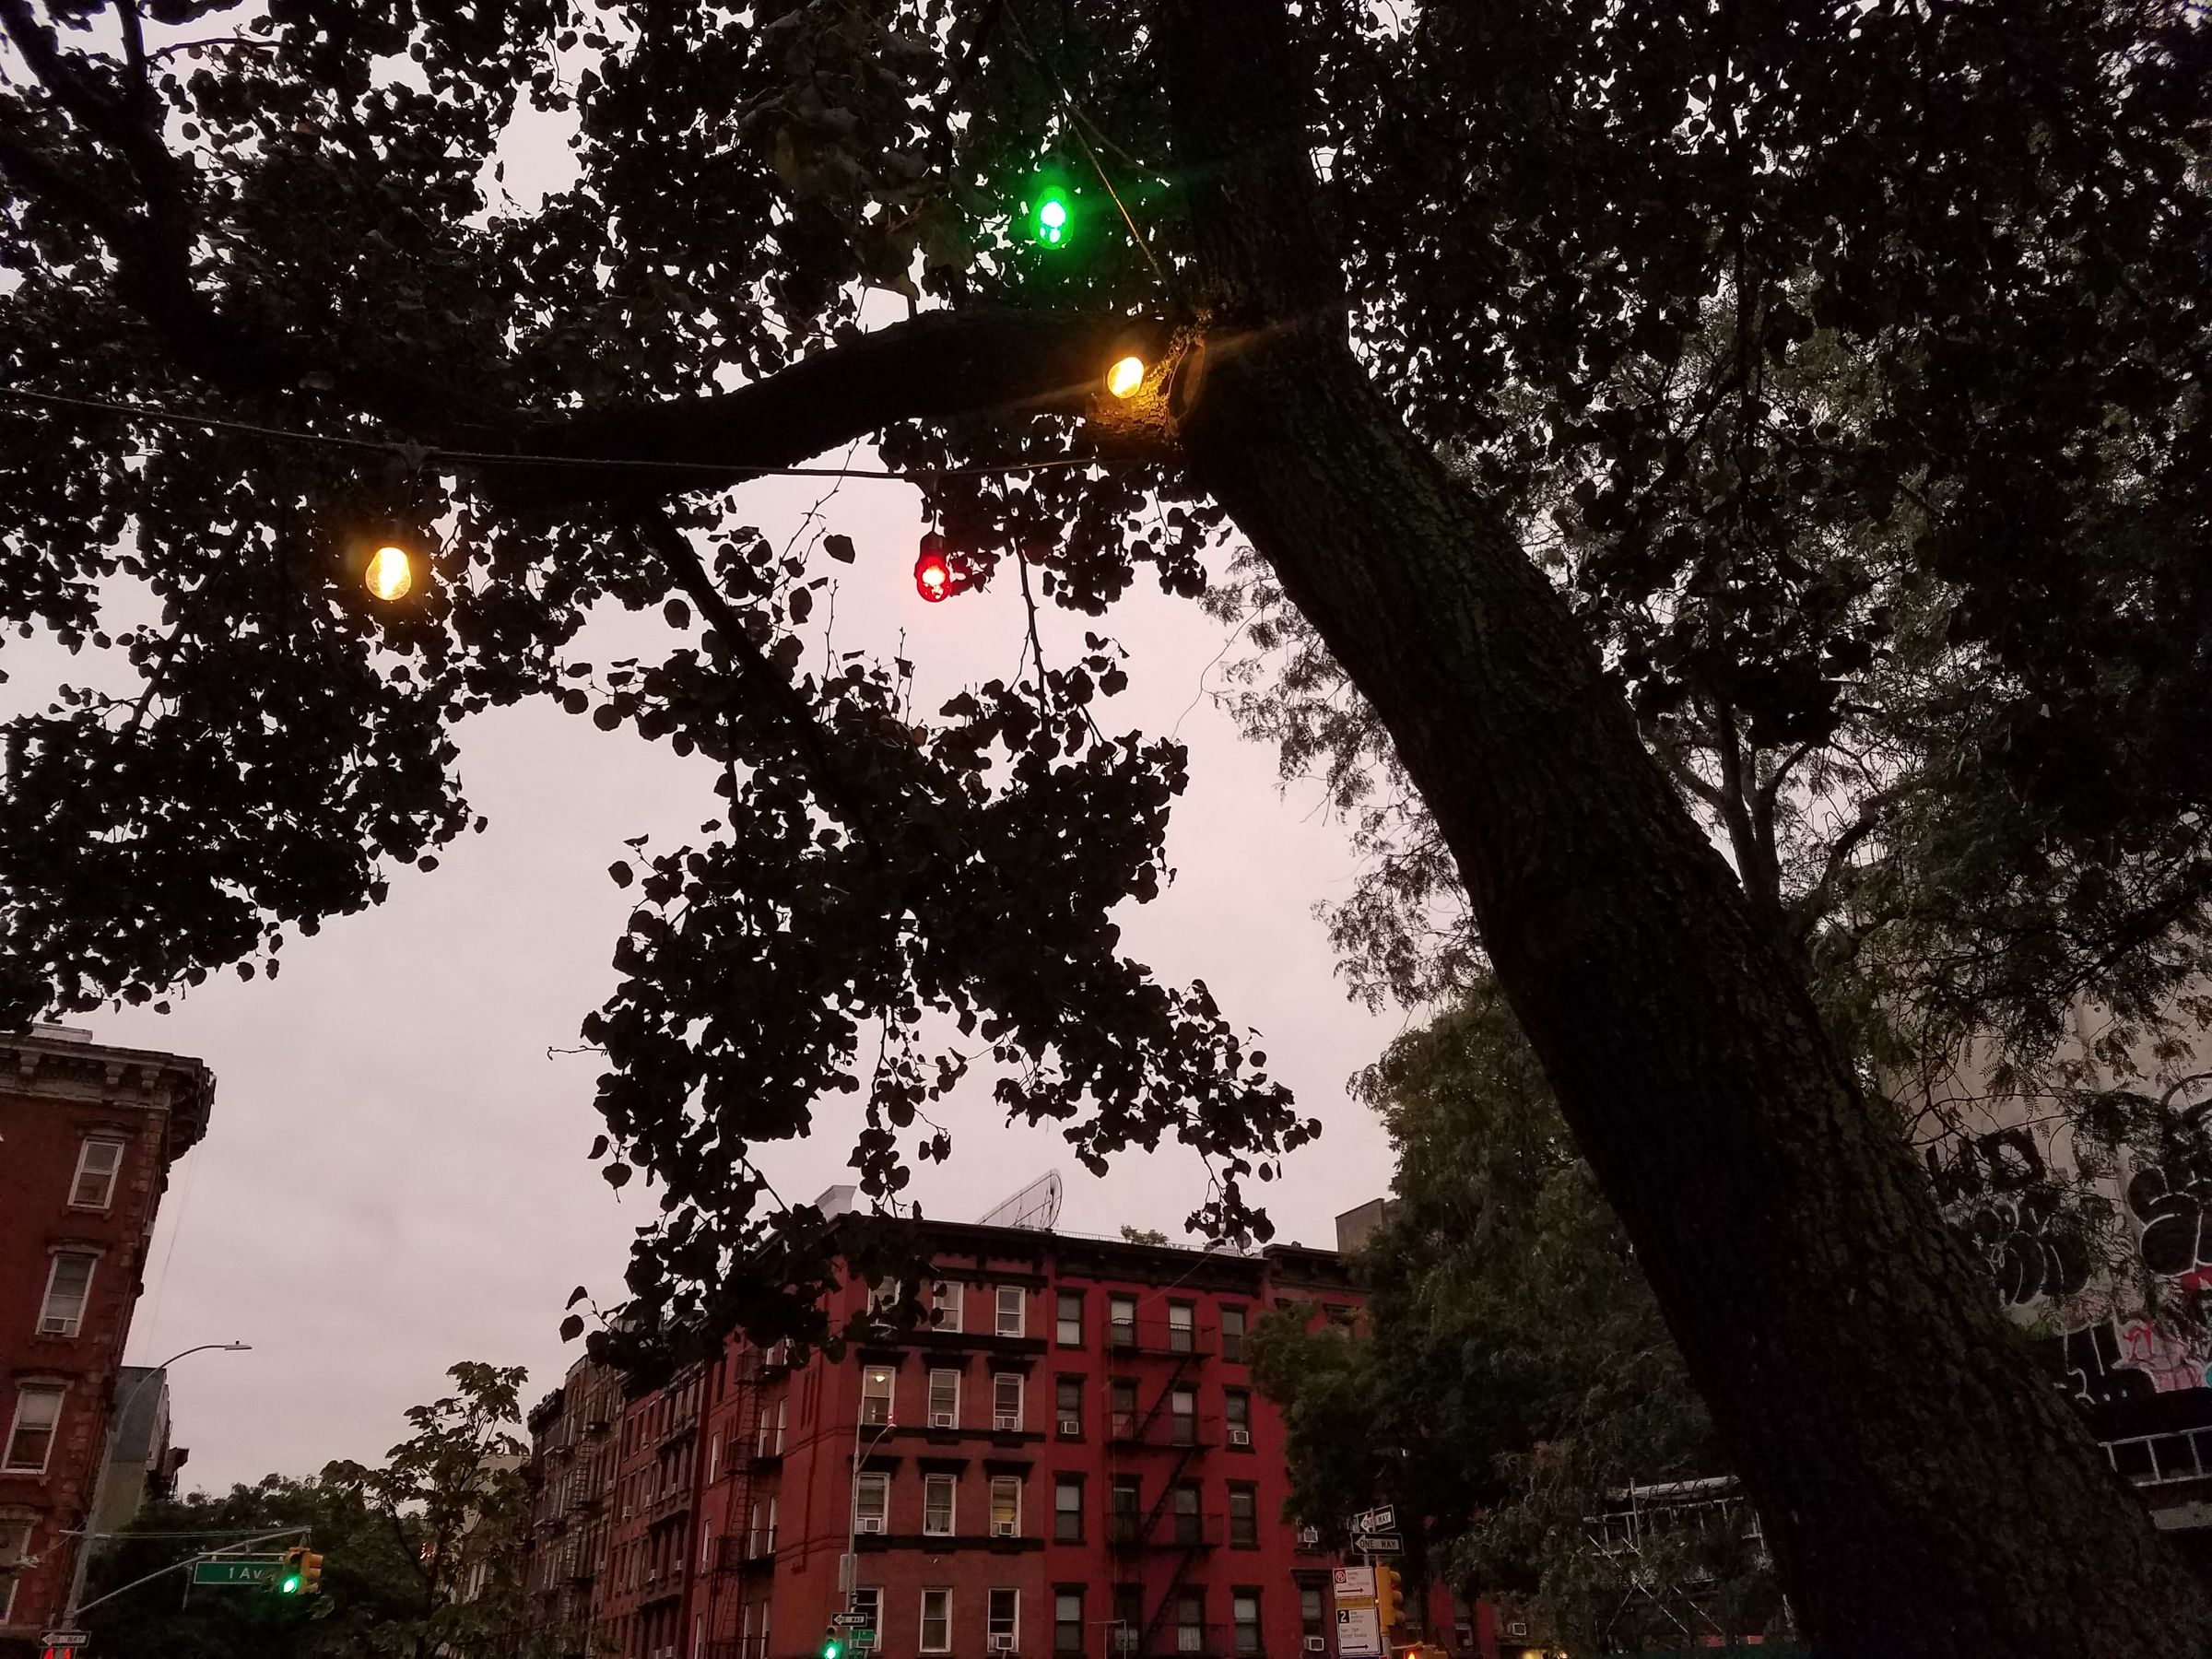 Dusk on a New York sidewalk. A street sign for 1st Avenue is in the distance. The sky is a light violet, and in the foreground is a darkened tree with a string of colored incandecent lights in its branches.